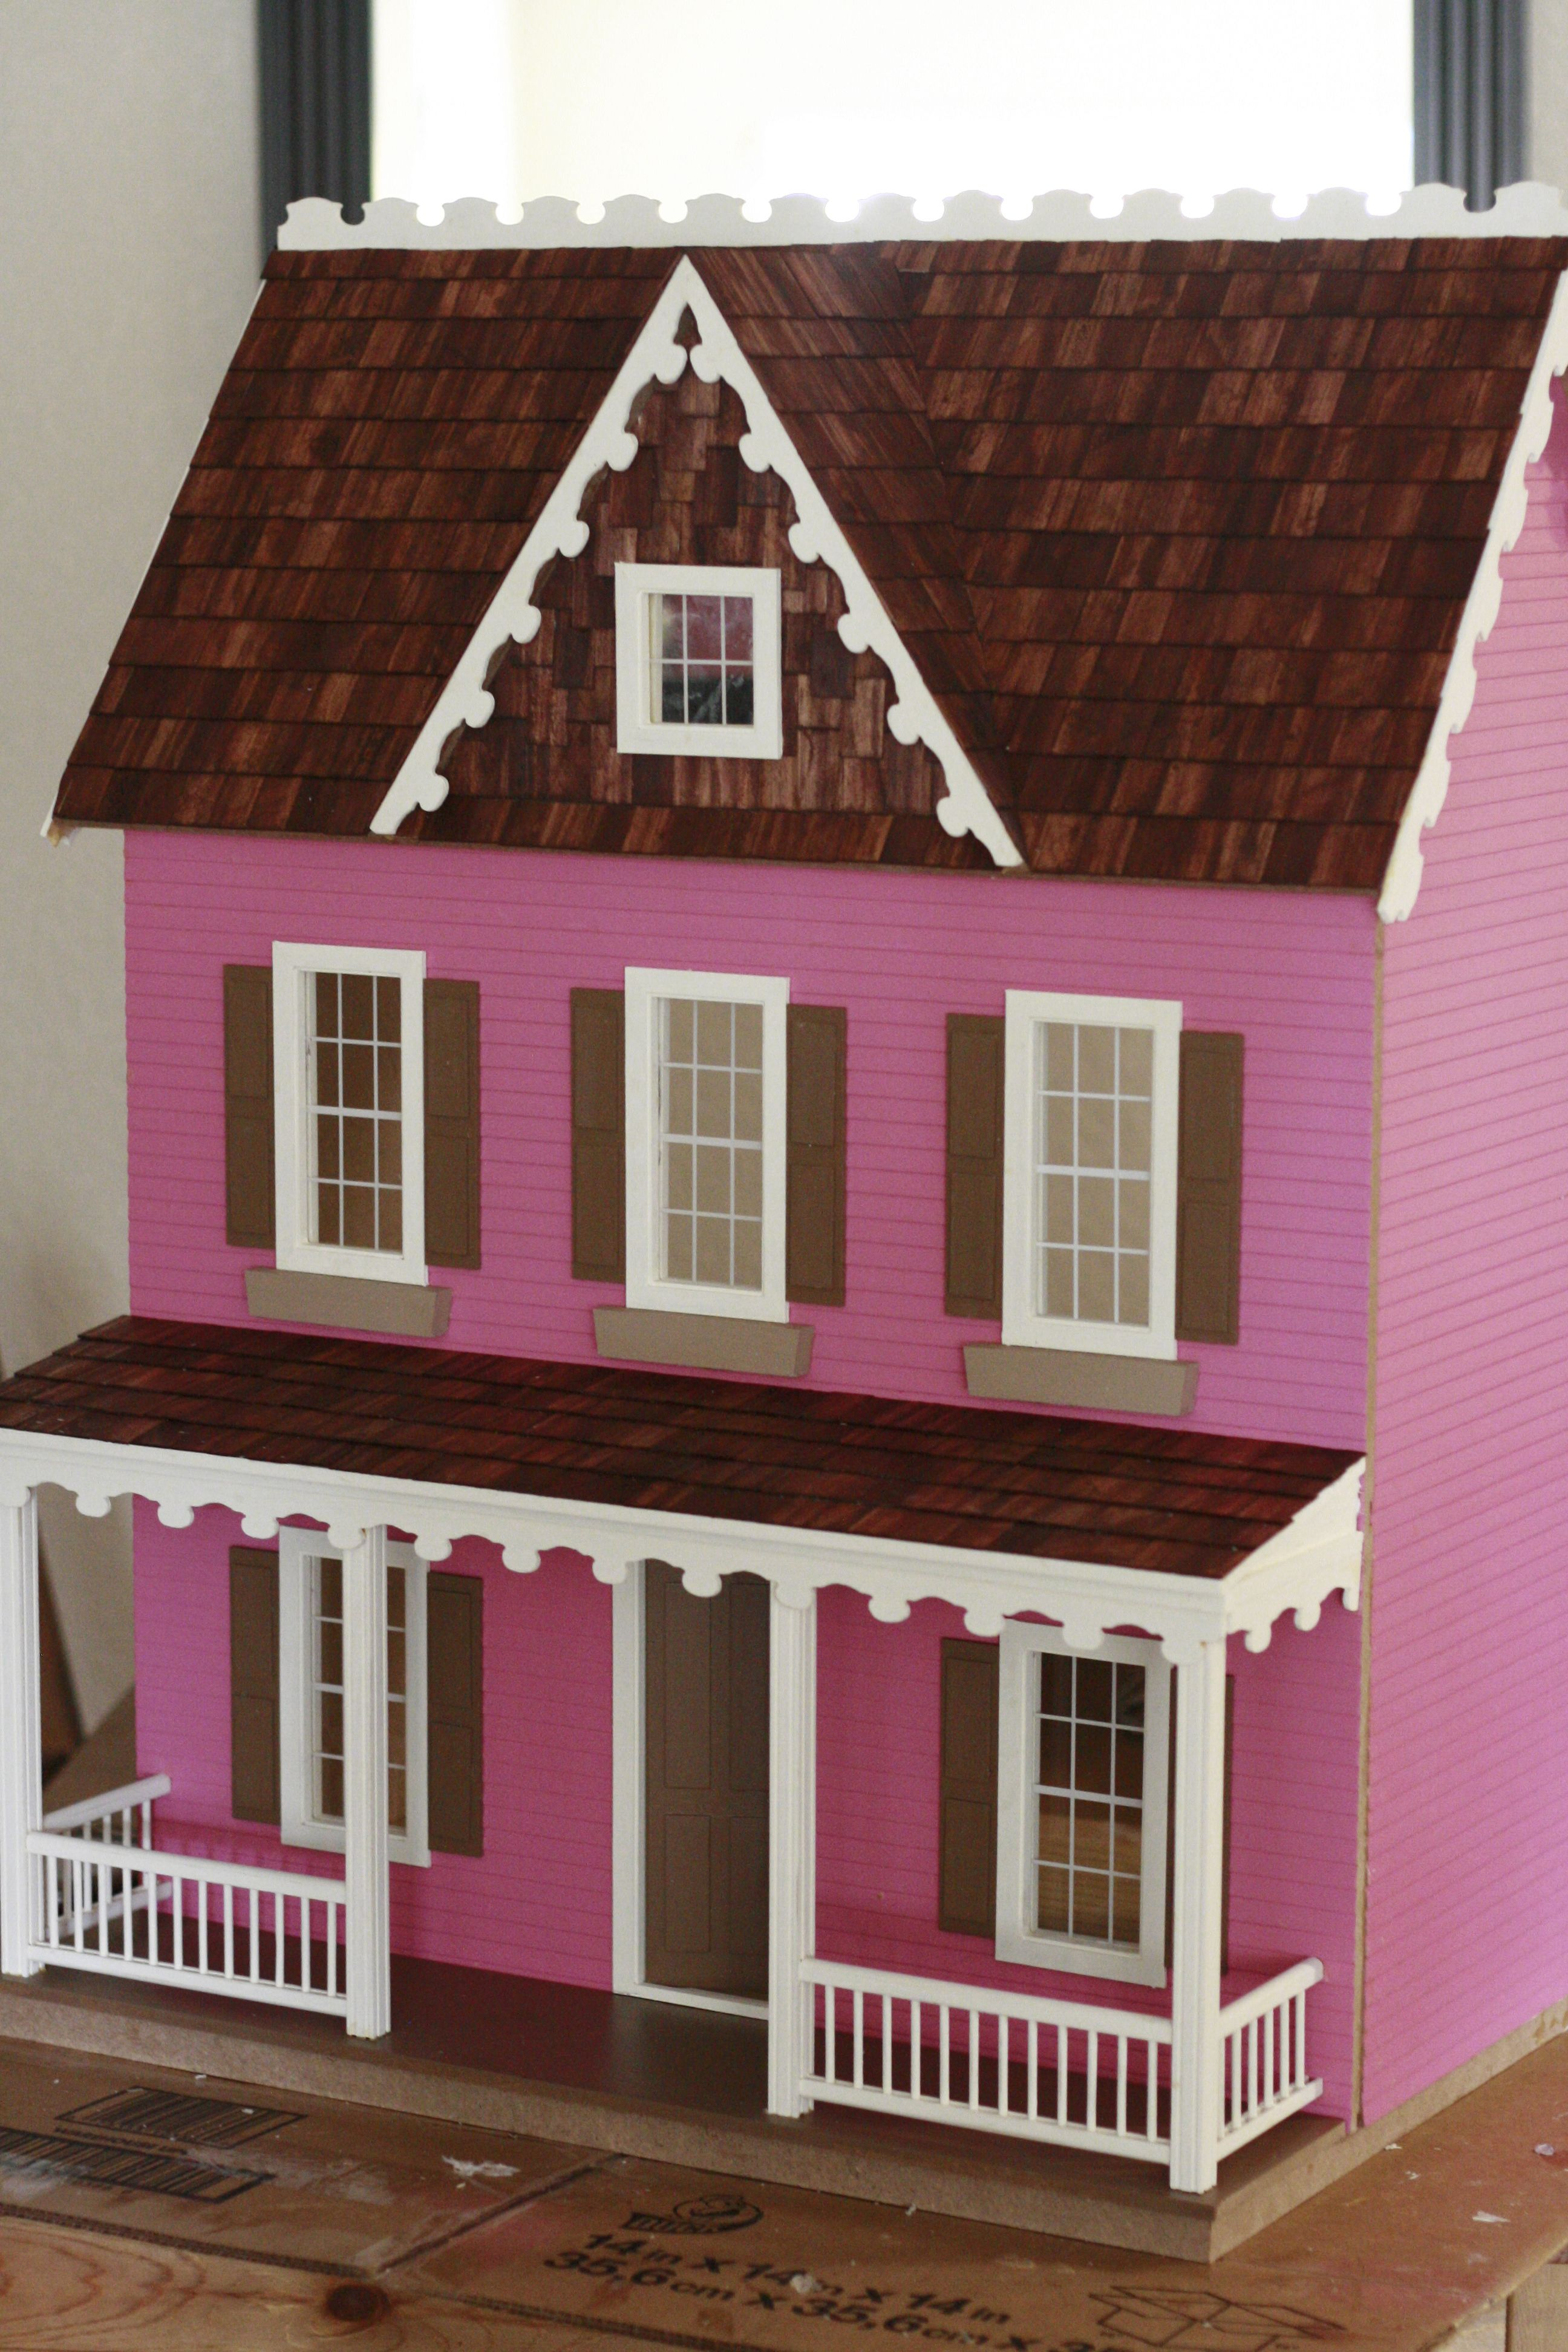 This Is The Vermont Farmhouse Dollhouse Came In A Box Kit I Built For My 6 Year Old Daughter We Hope It Lasts Good Long Time And Will Be Passed On